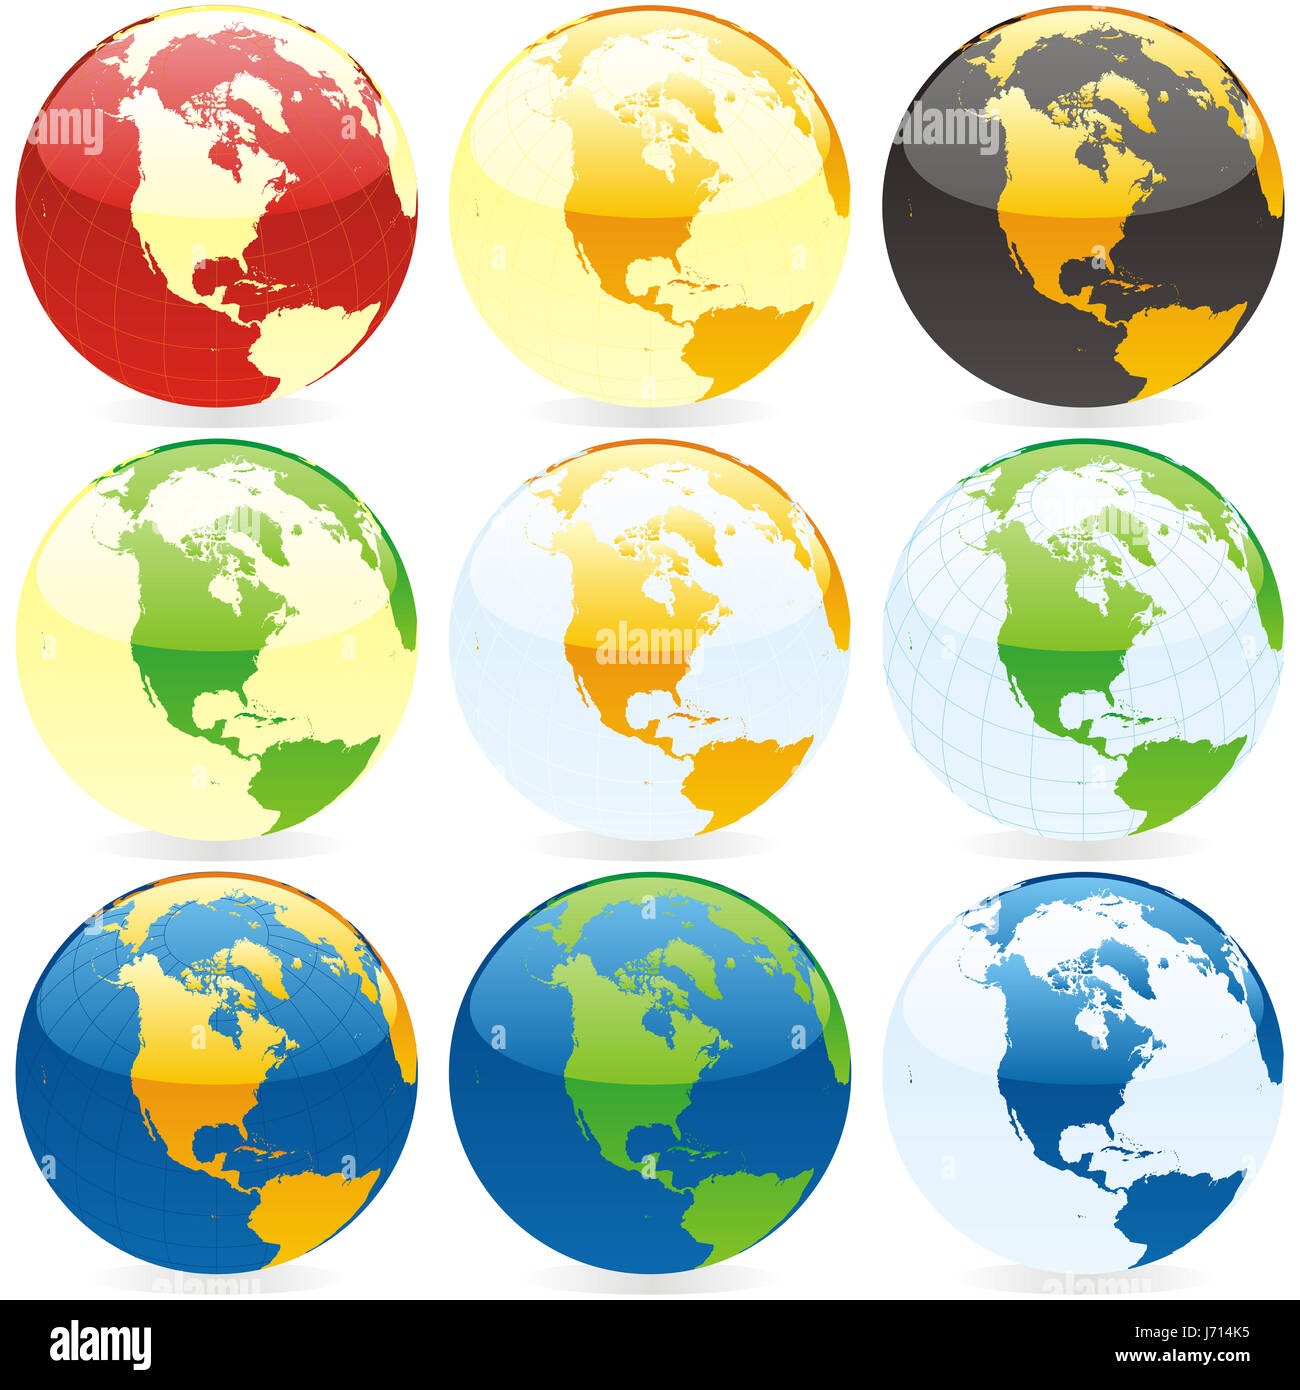 object isolated illustration globe planet earth world map atlas map of the - Stock Image